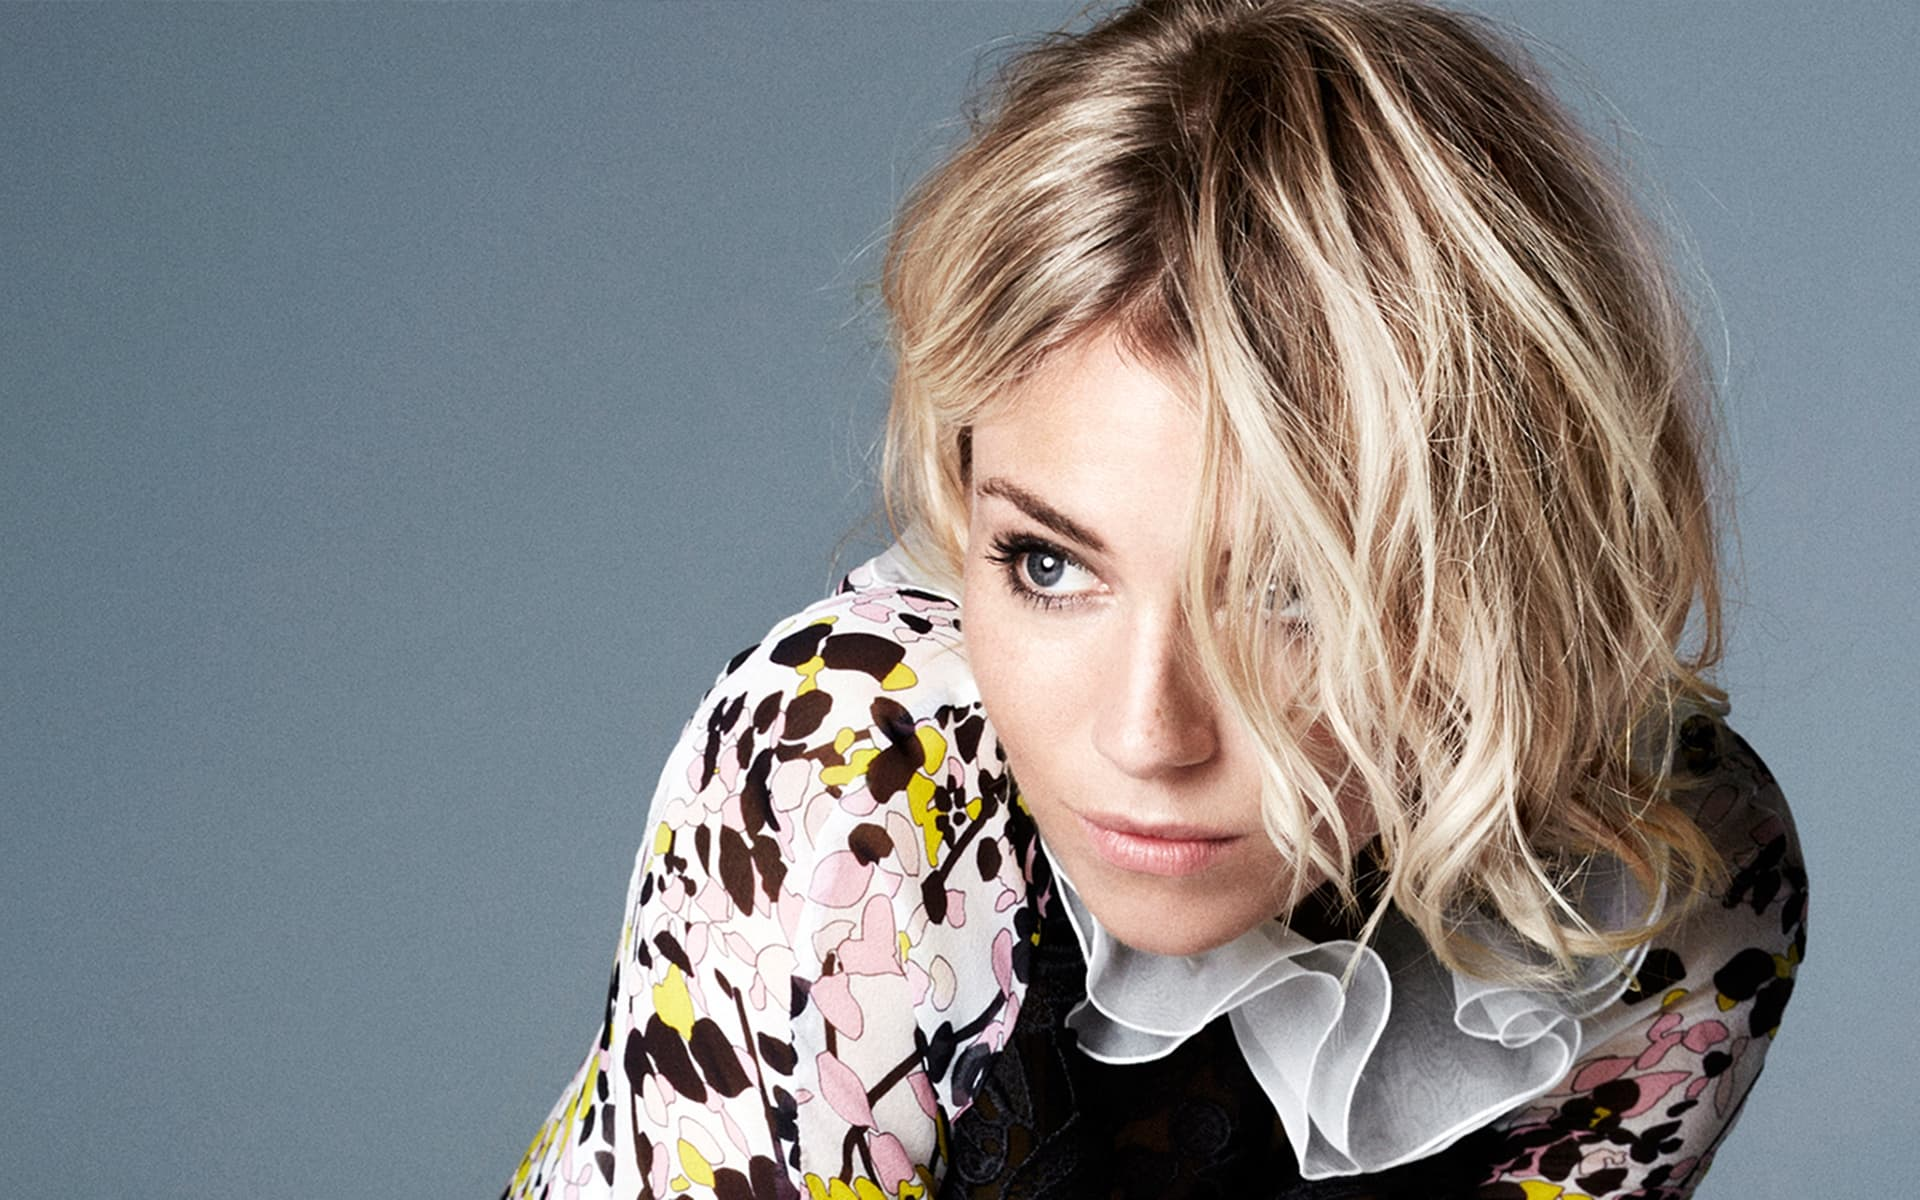 Wallpapers Hd Technology 20 Sienna Miller Wallpapers High Quality Download